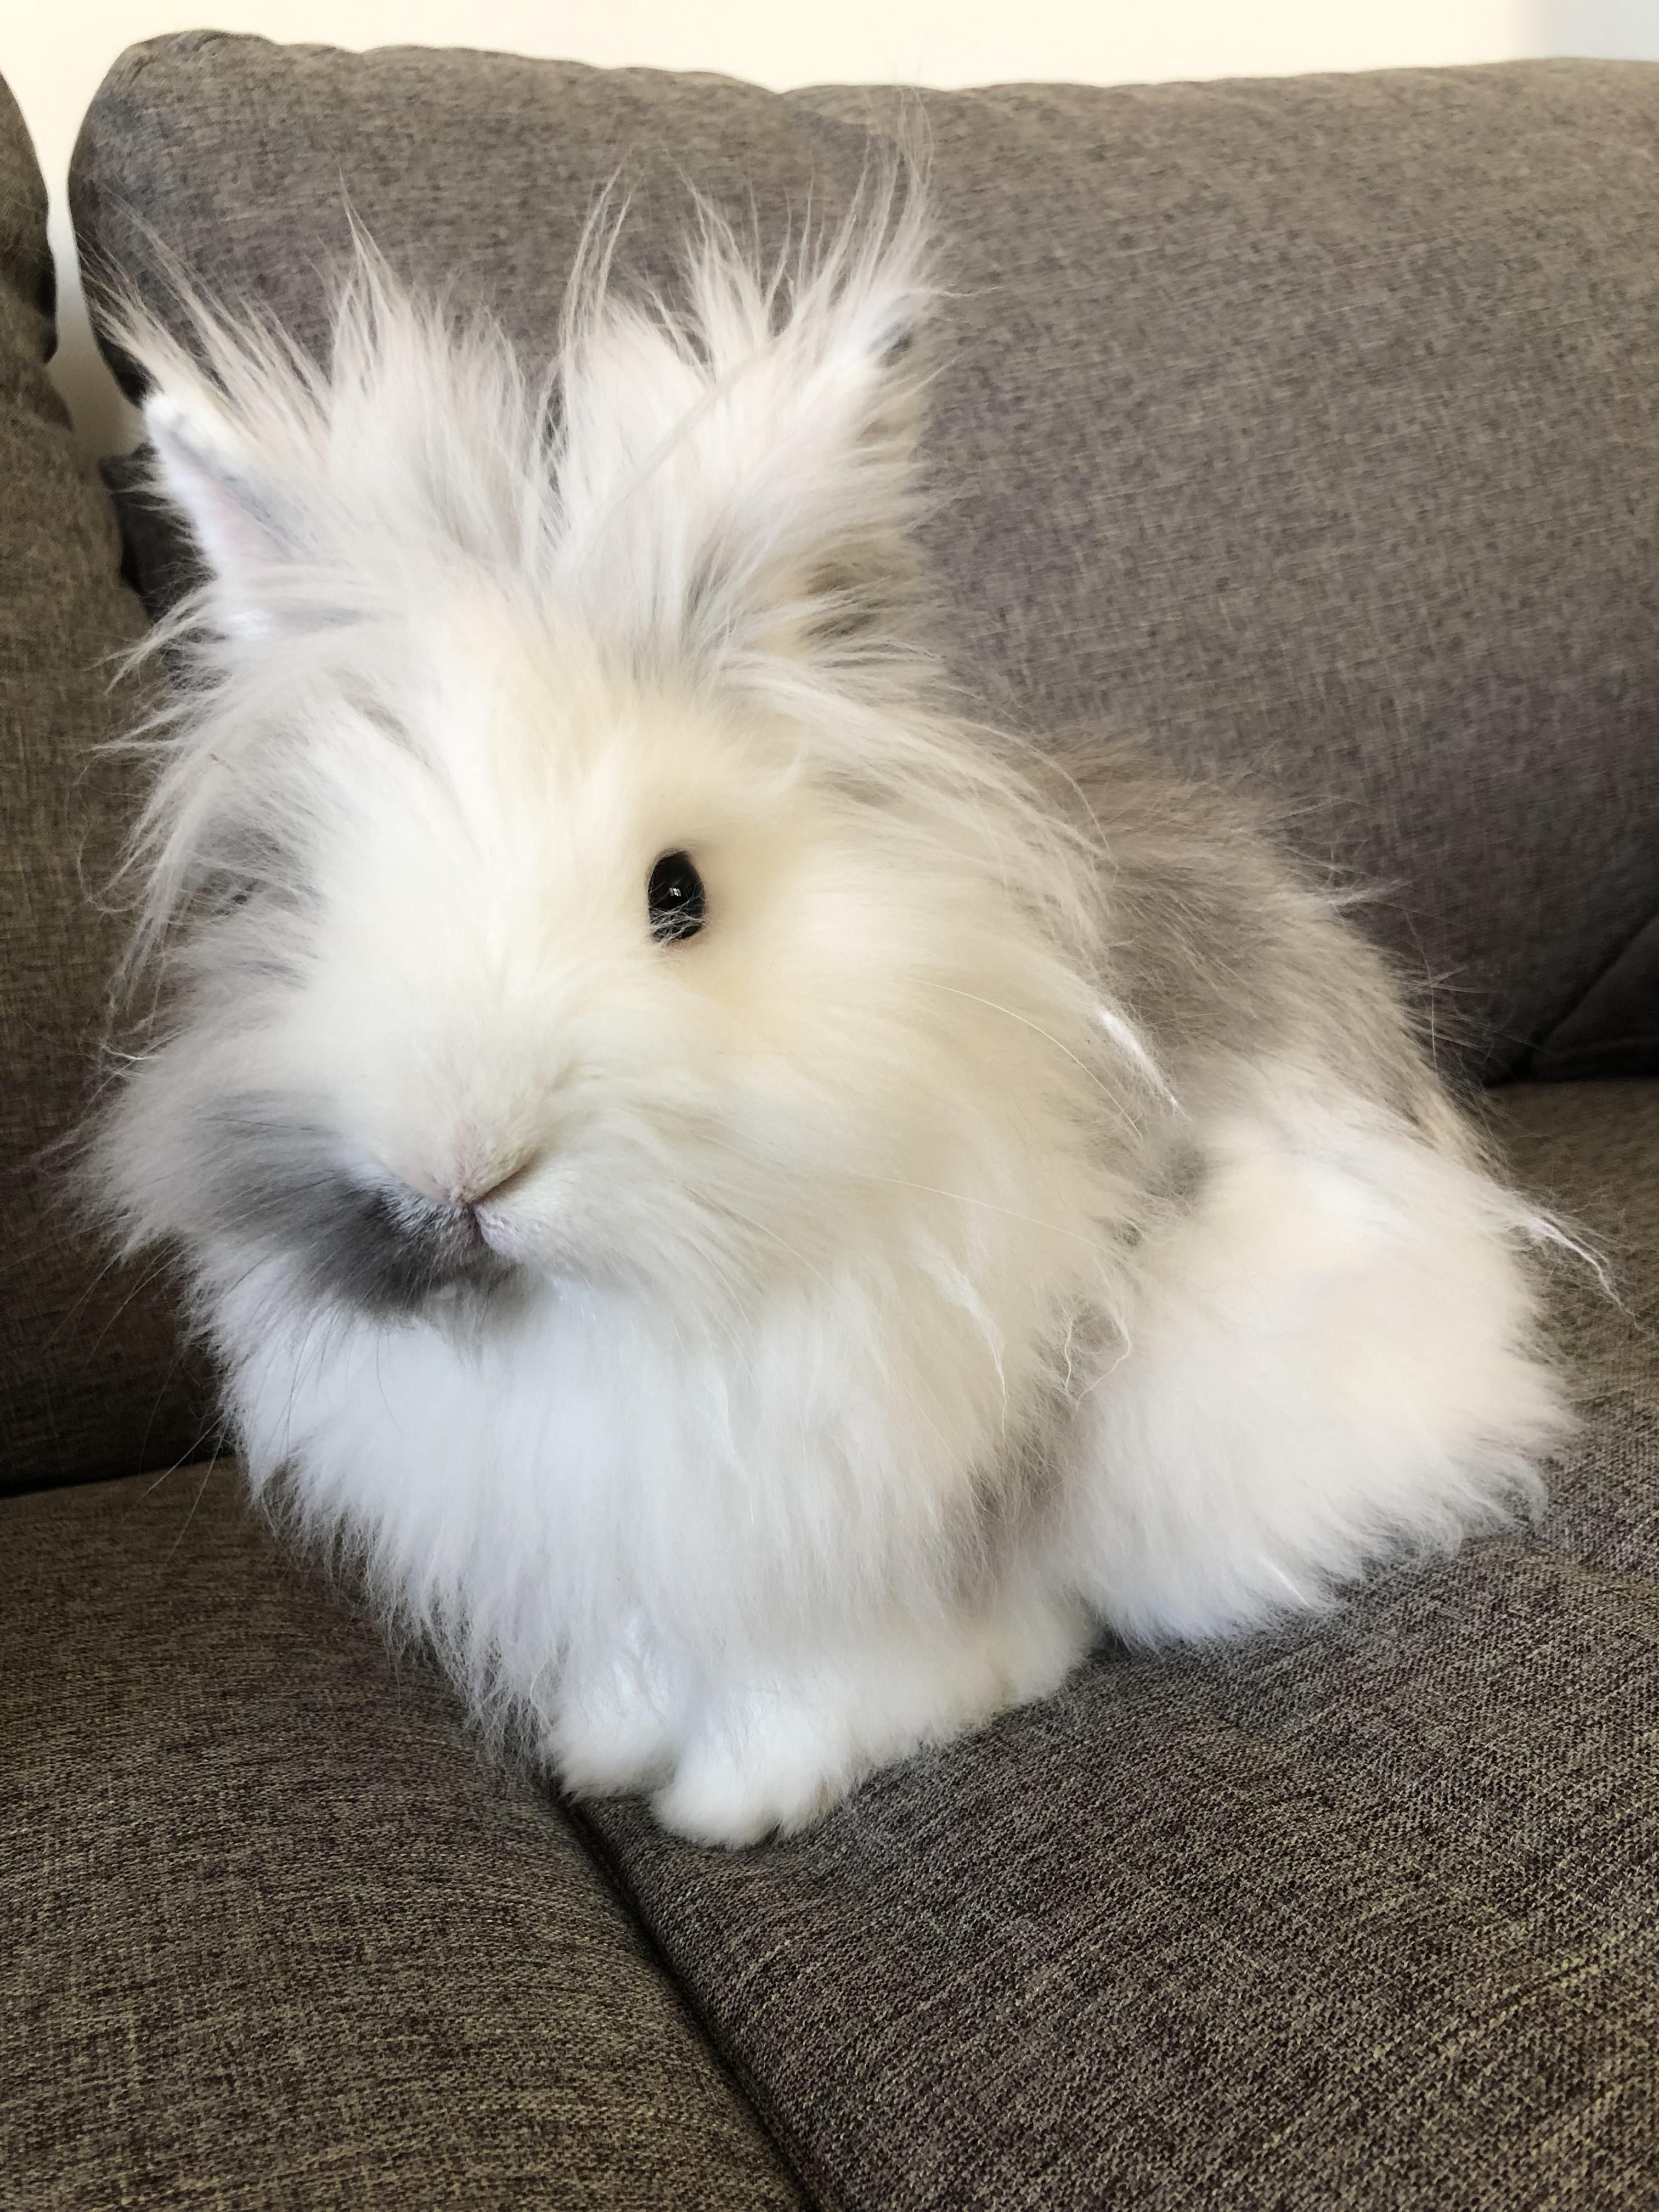 Daily Dose Of Bean Do Rabbits Make Good Pets For Children Are Rabbits Easy To Look After Do You Love Bunnies Cute Baby Bunnies Cute Baby Animals Pet Bunny